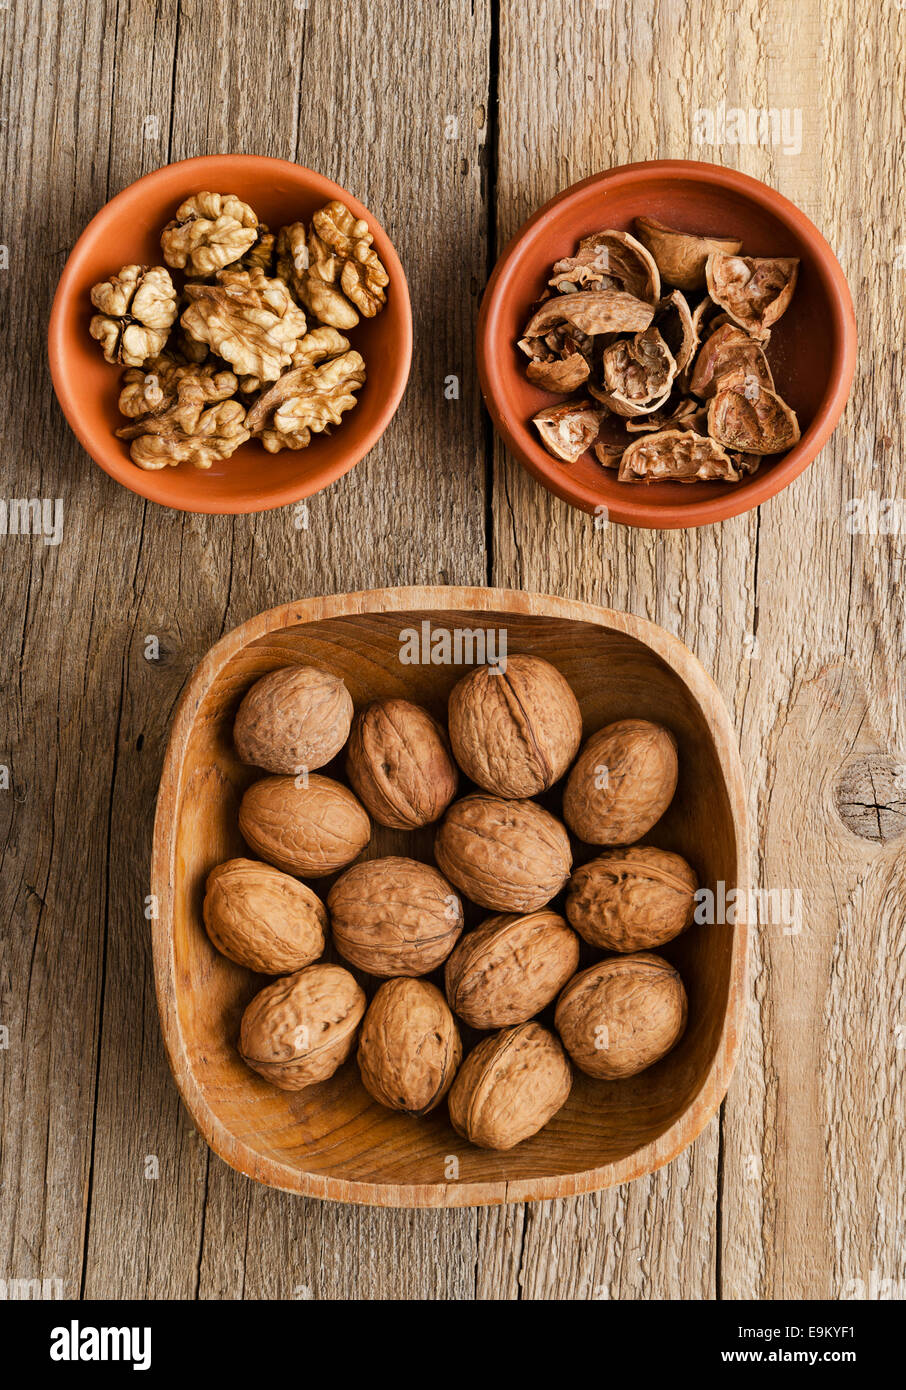 Walnuts, core and nutshell in rustic bowls over wooden table - Stock Image